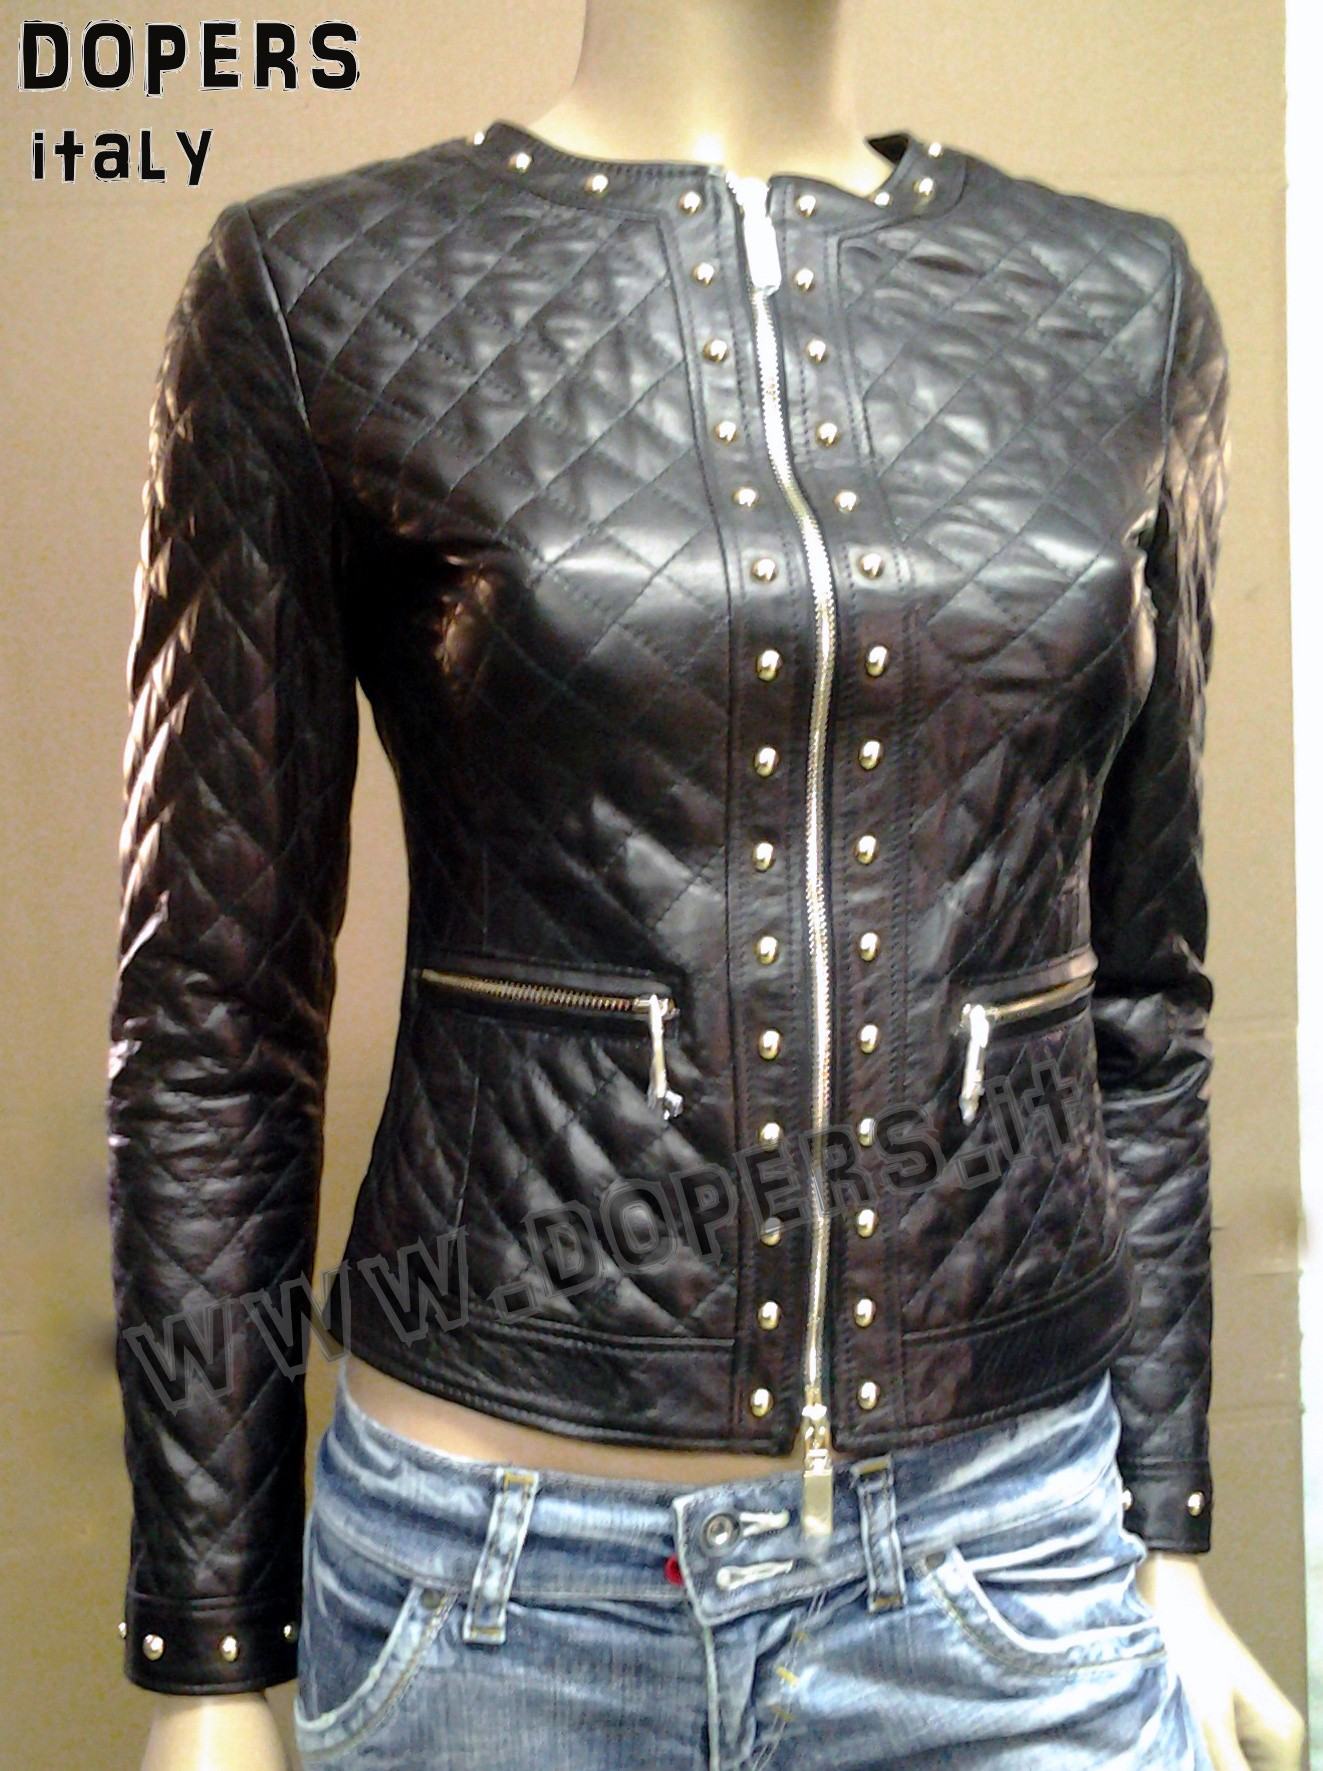 on sale bd8a2 c53d4 Giacca in pelle donna modello Lory